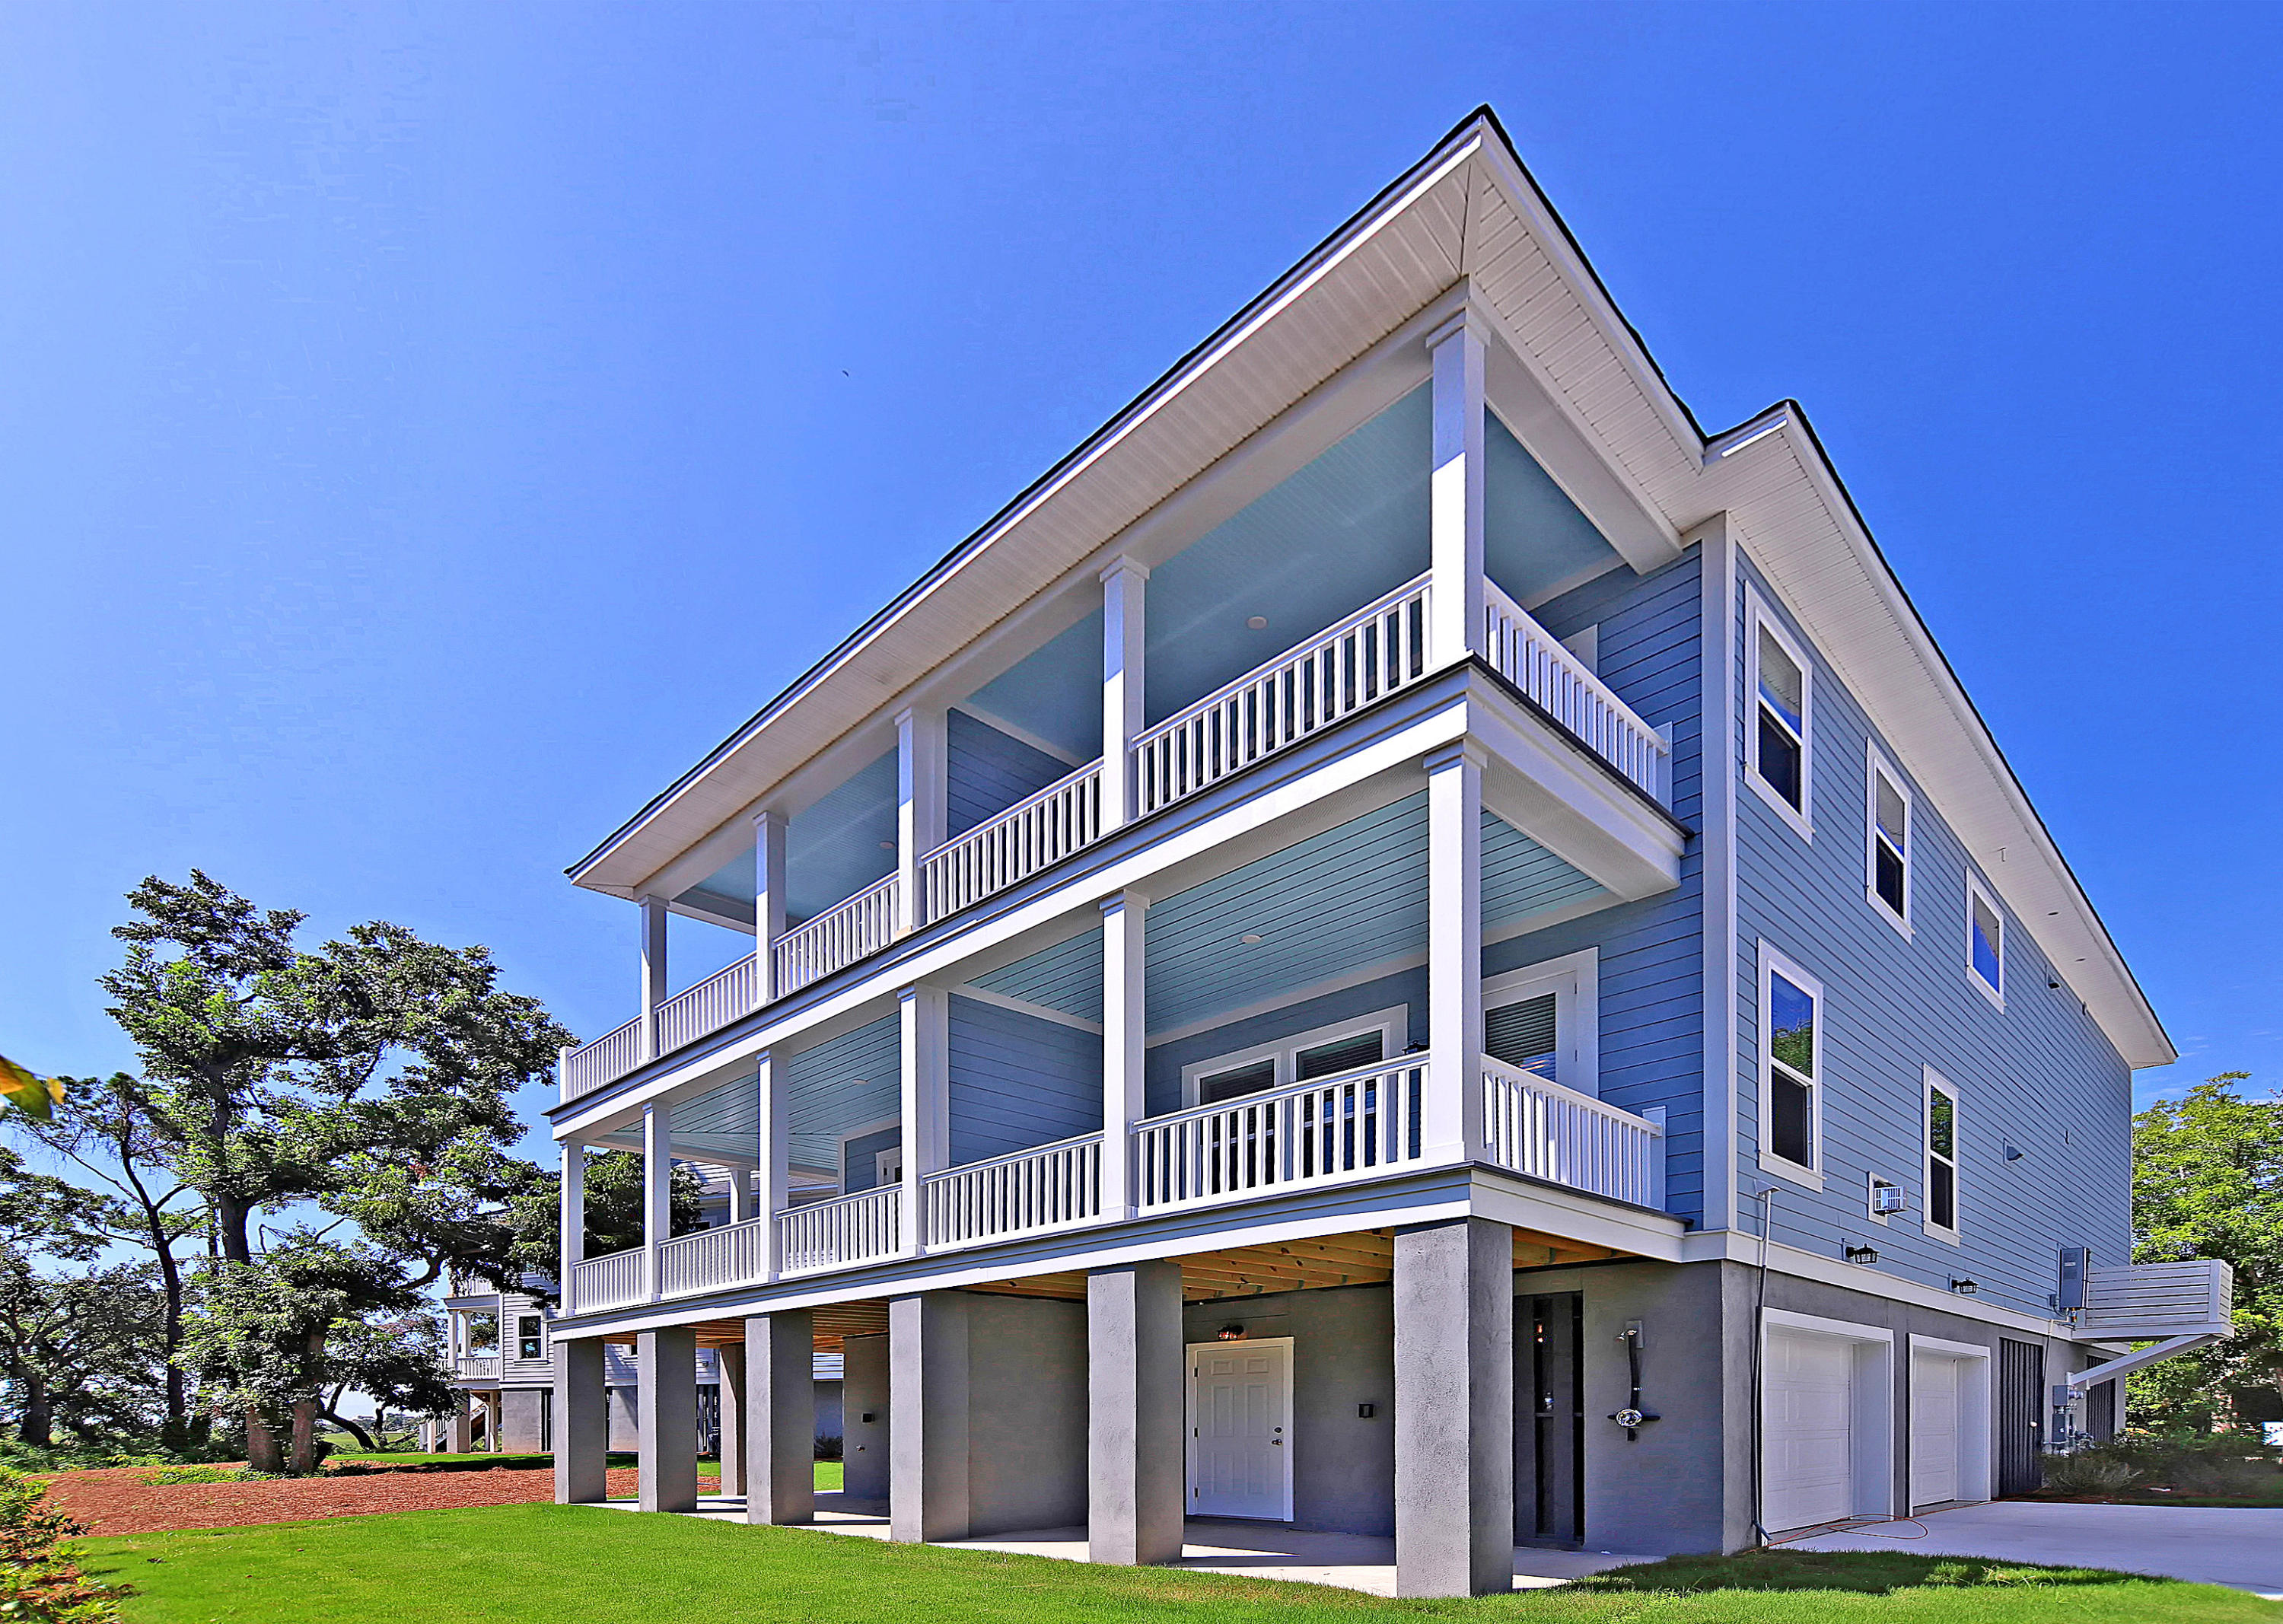 Sable On The Marsh Homes For Sale - 124 Howard Mary, Charleston, SC - 9